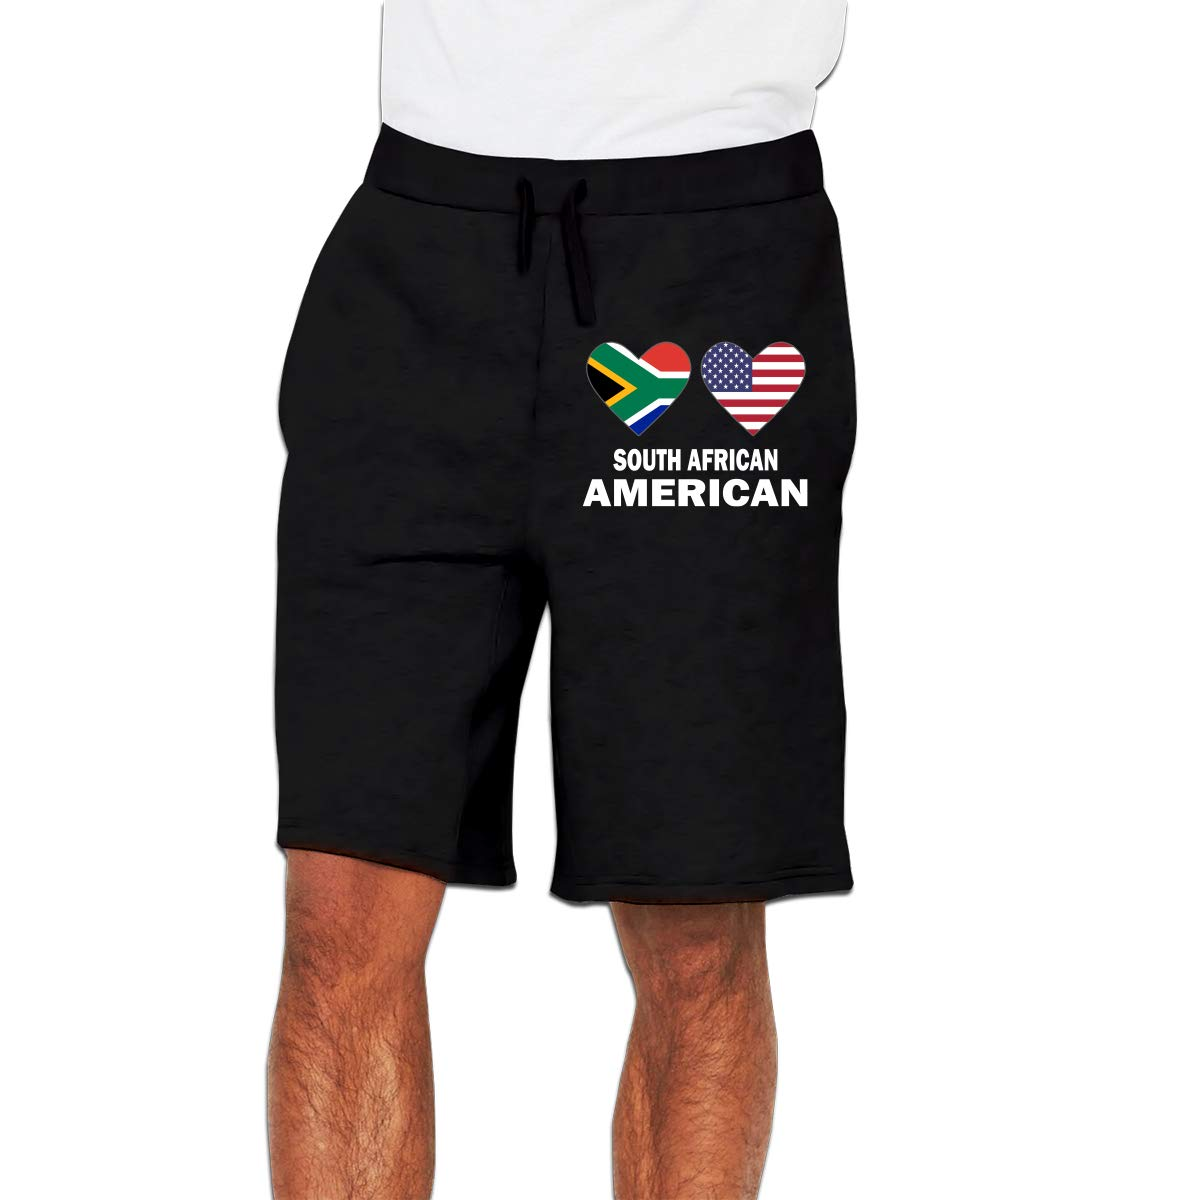 YDXC6FY Mens Beach Shorts South African American Hearts Patterned Club Shorts